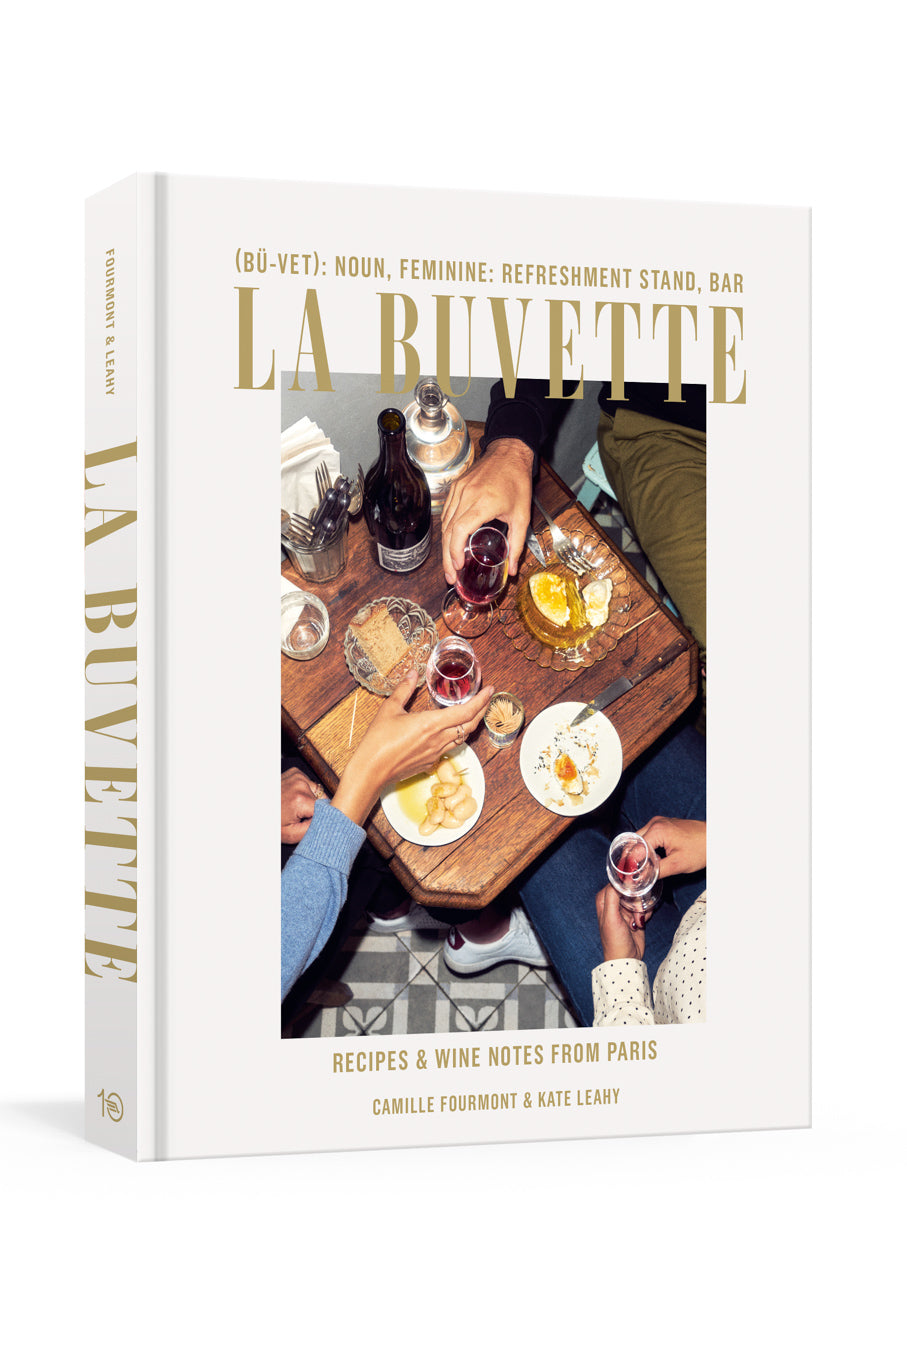 La Buvette recipes and wine notes in low light